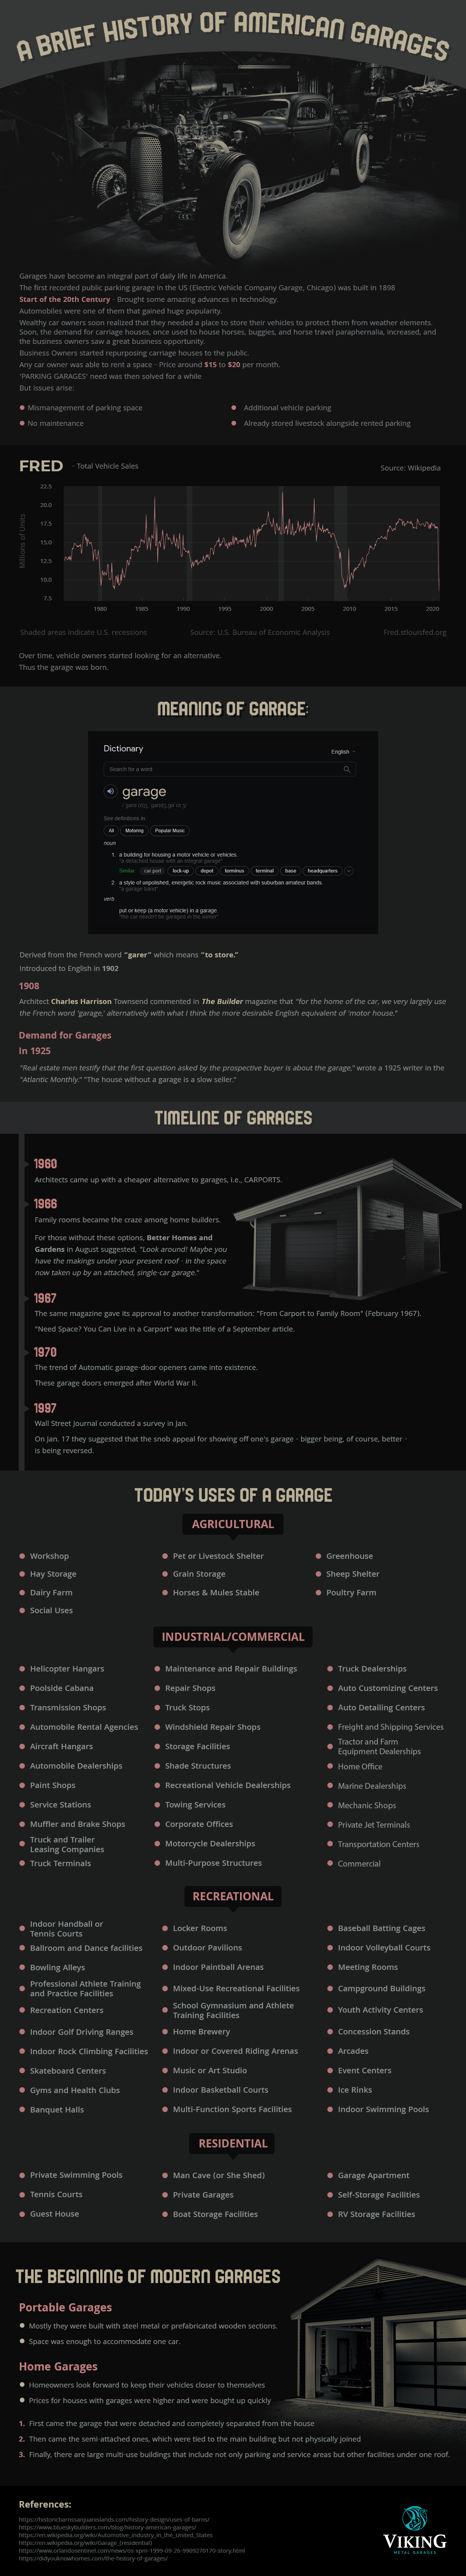 A Brief History of American Garages